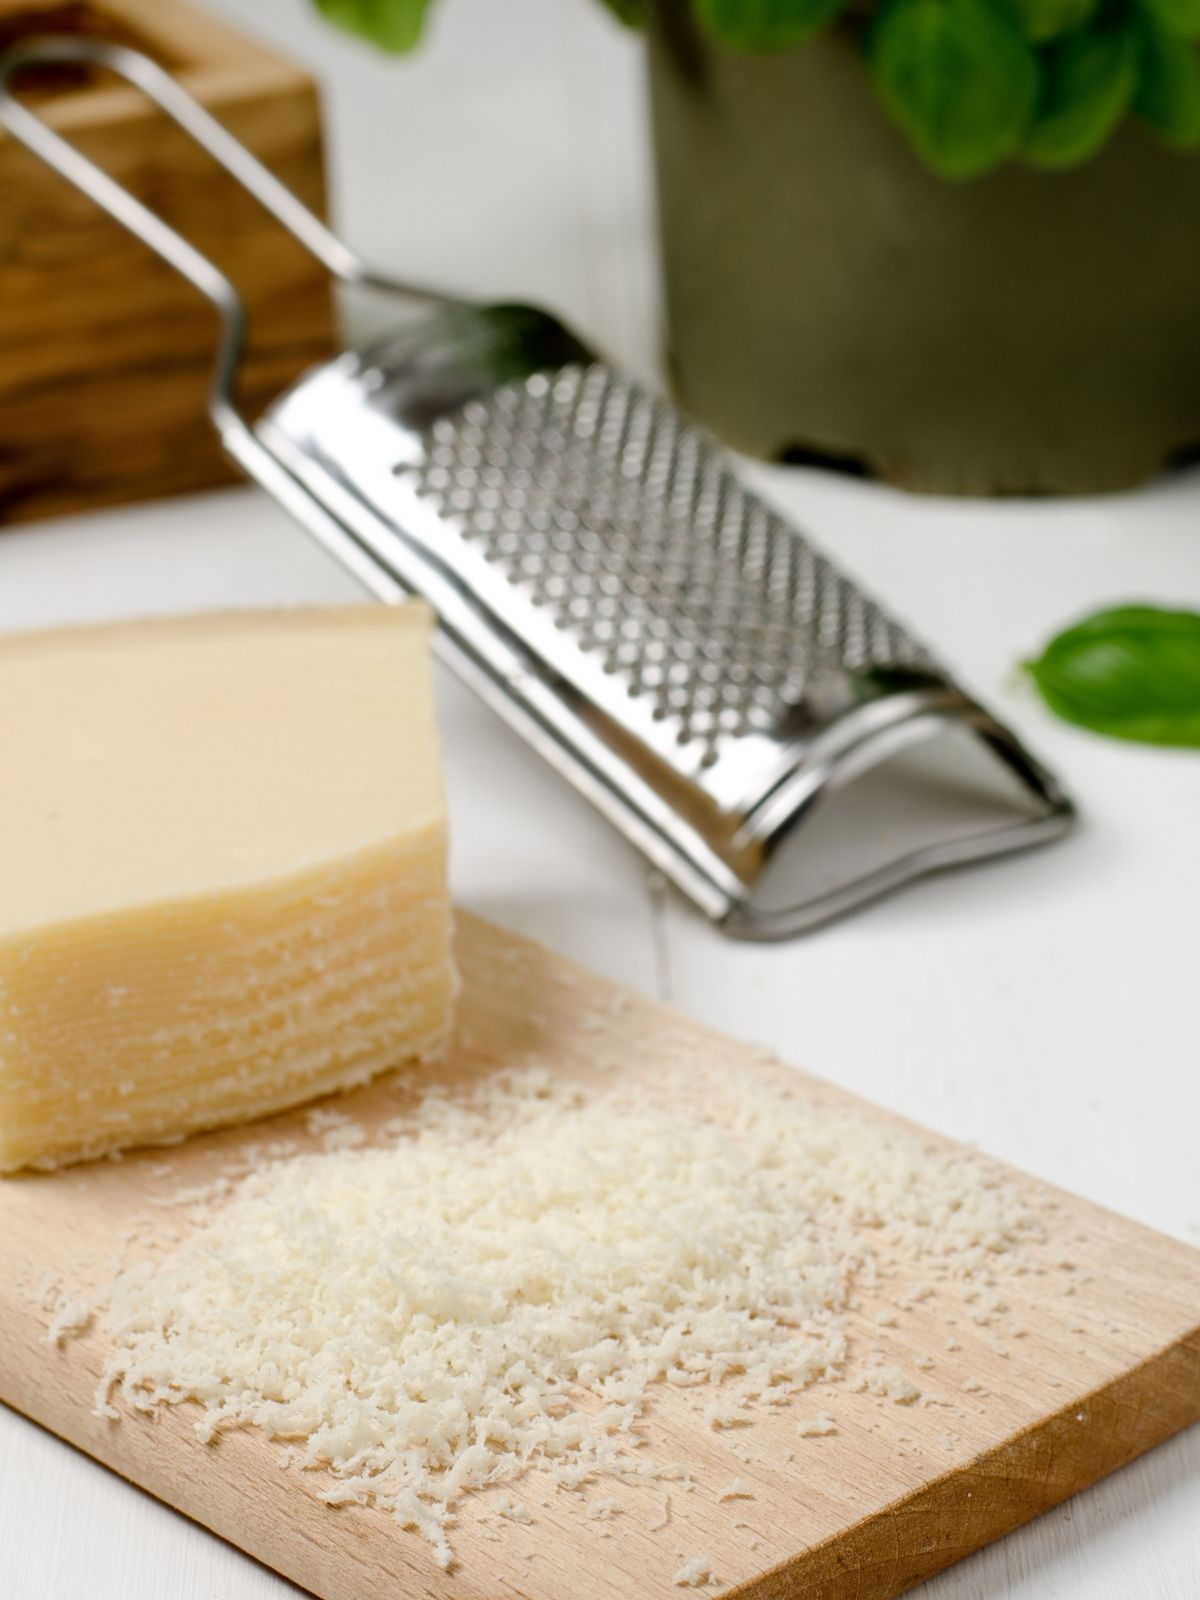 A block of parmesan cheese resting on a cutting board. Some of the cheese has been shredded in the foreground and a hand-held cheese grater is in the background.